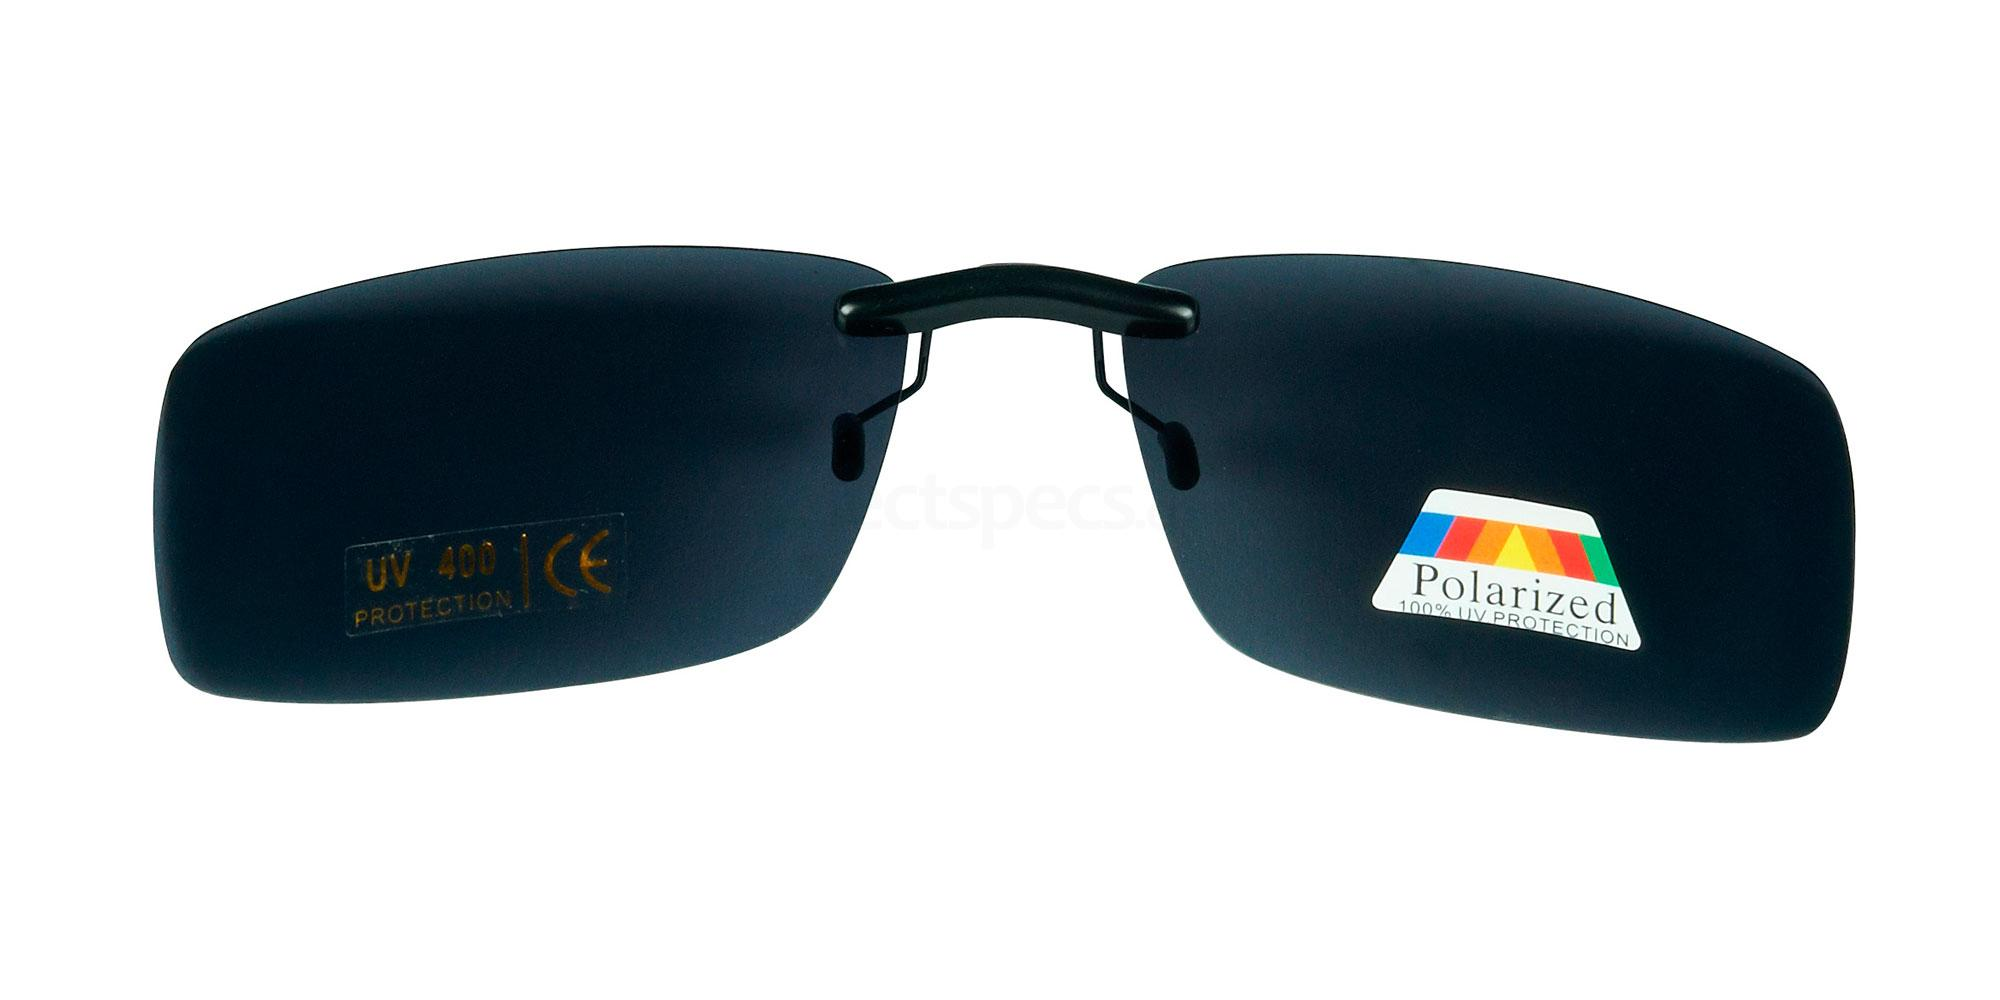 A CL4 – Sunglasses Clip-on Accessories, Optical accessories